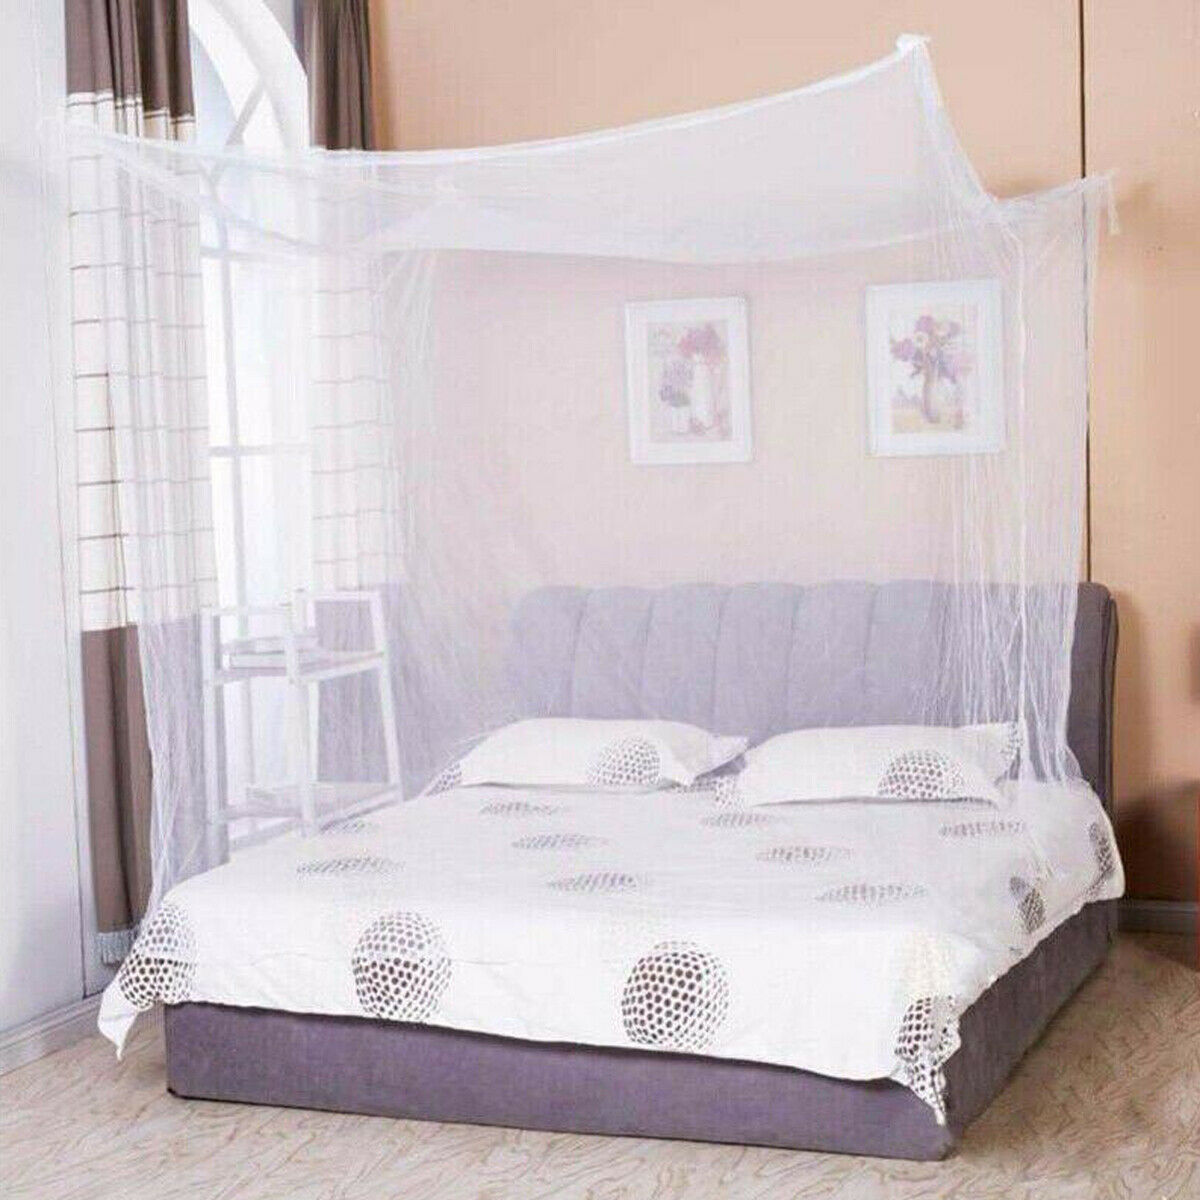 new mosquito net canopy insect bed lace netting mesh students bedding cover us